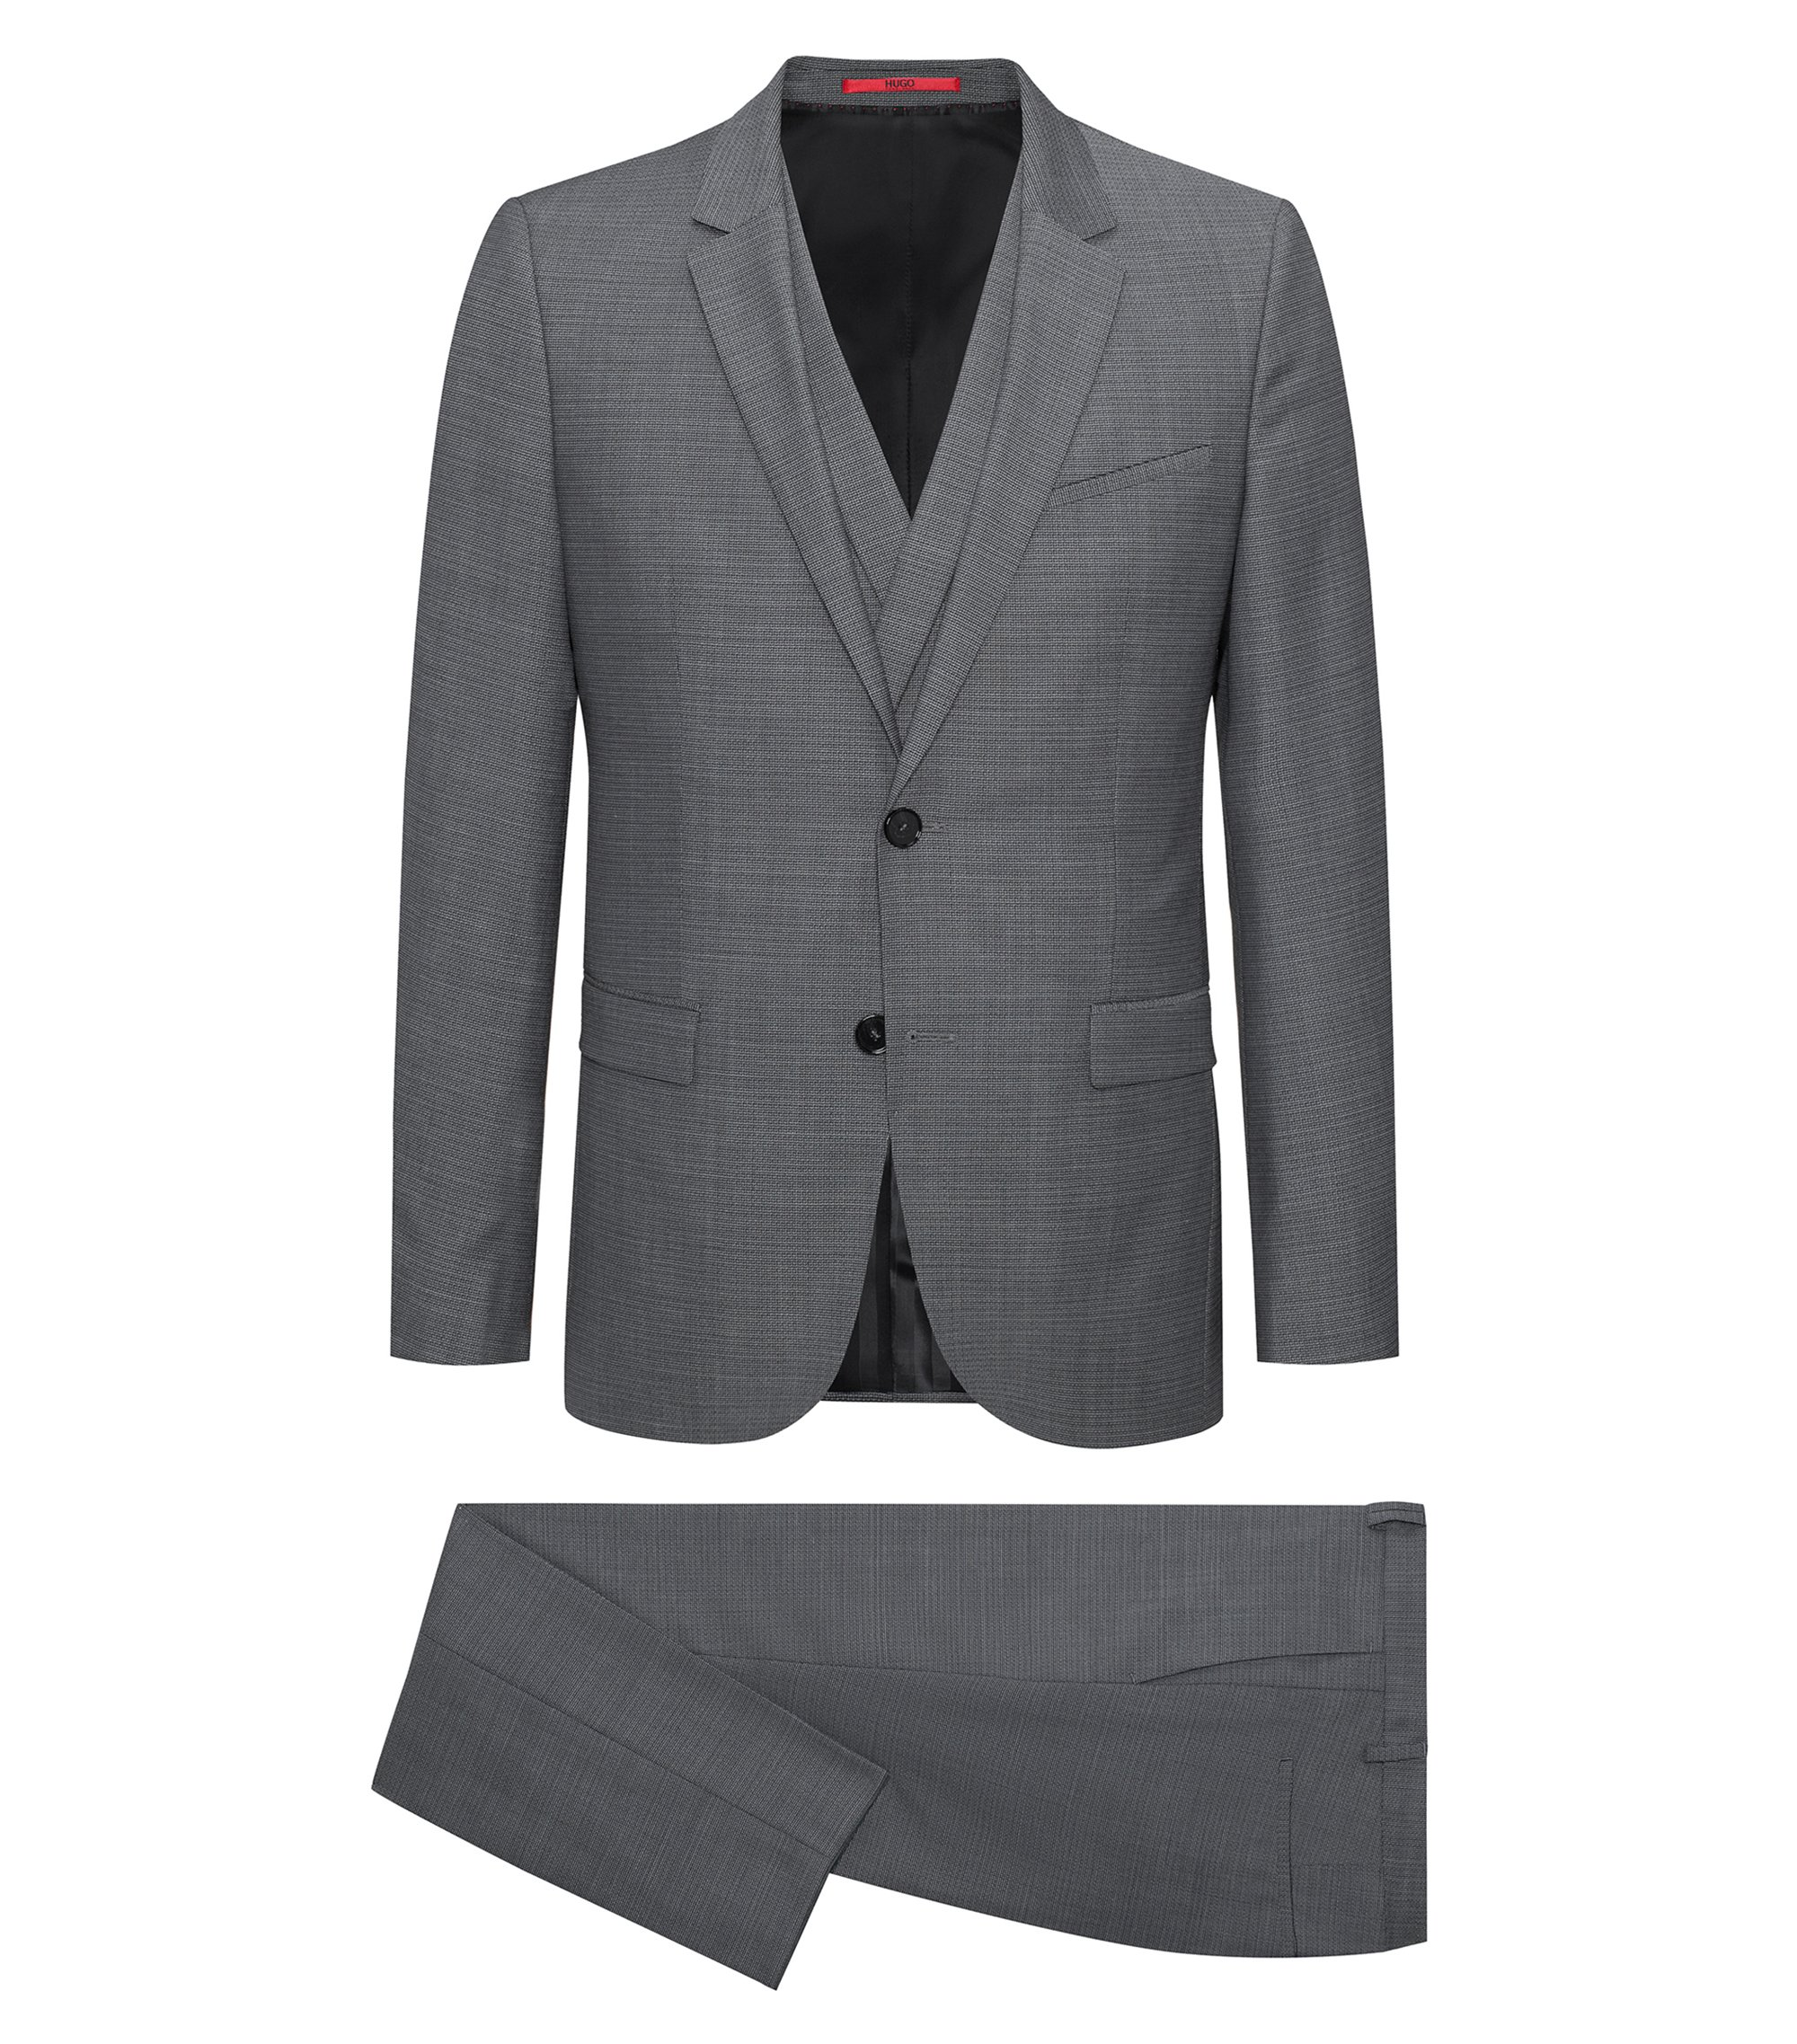 Super 100s Virgin Wool 3-Piece Suit, Extra Slim Fit | Admon/Wilms/Hesten, Grey